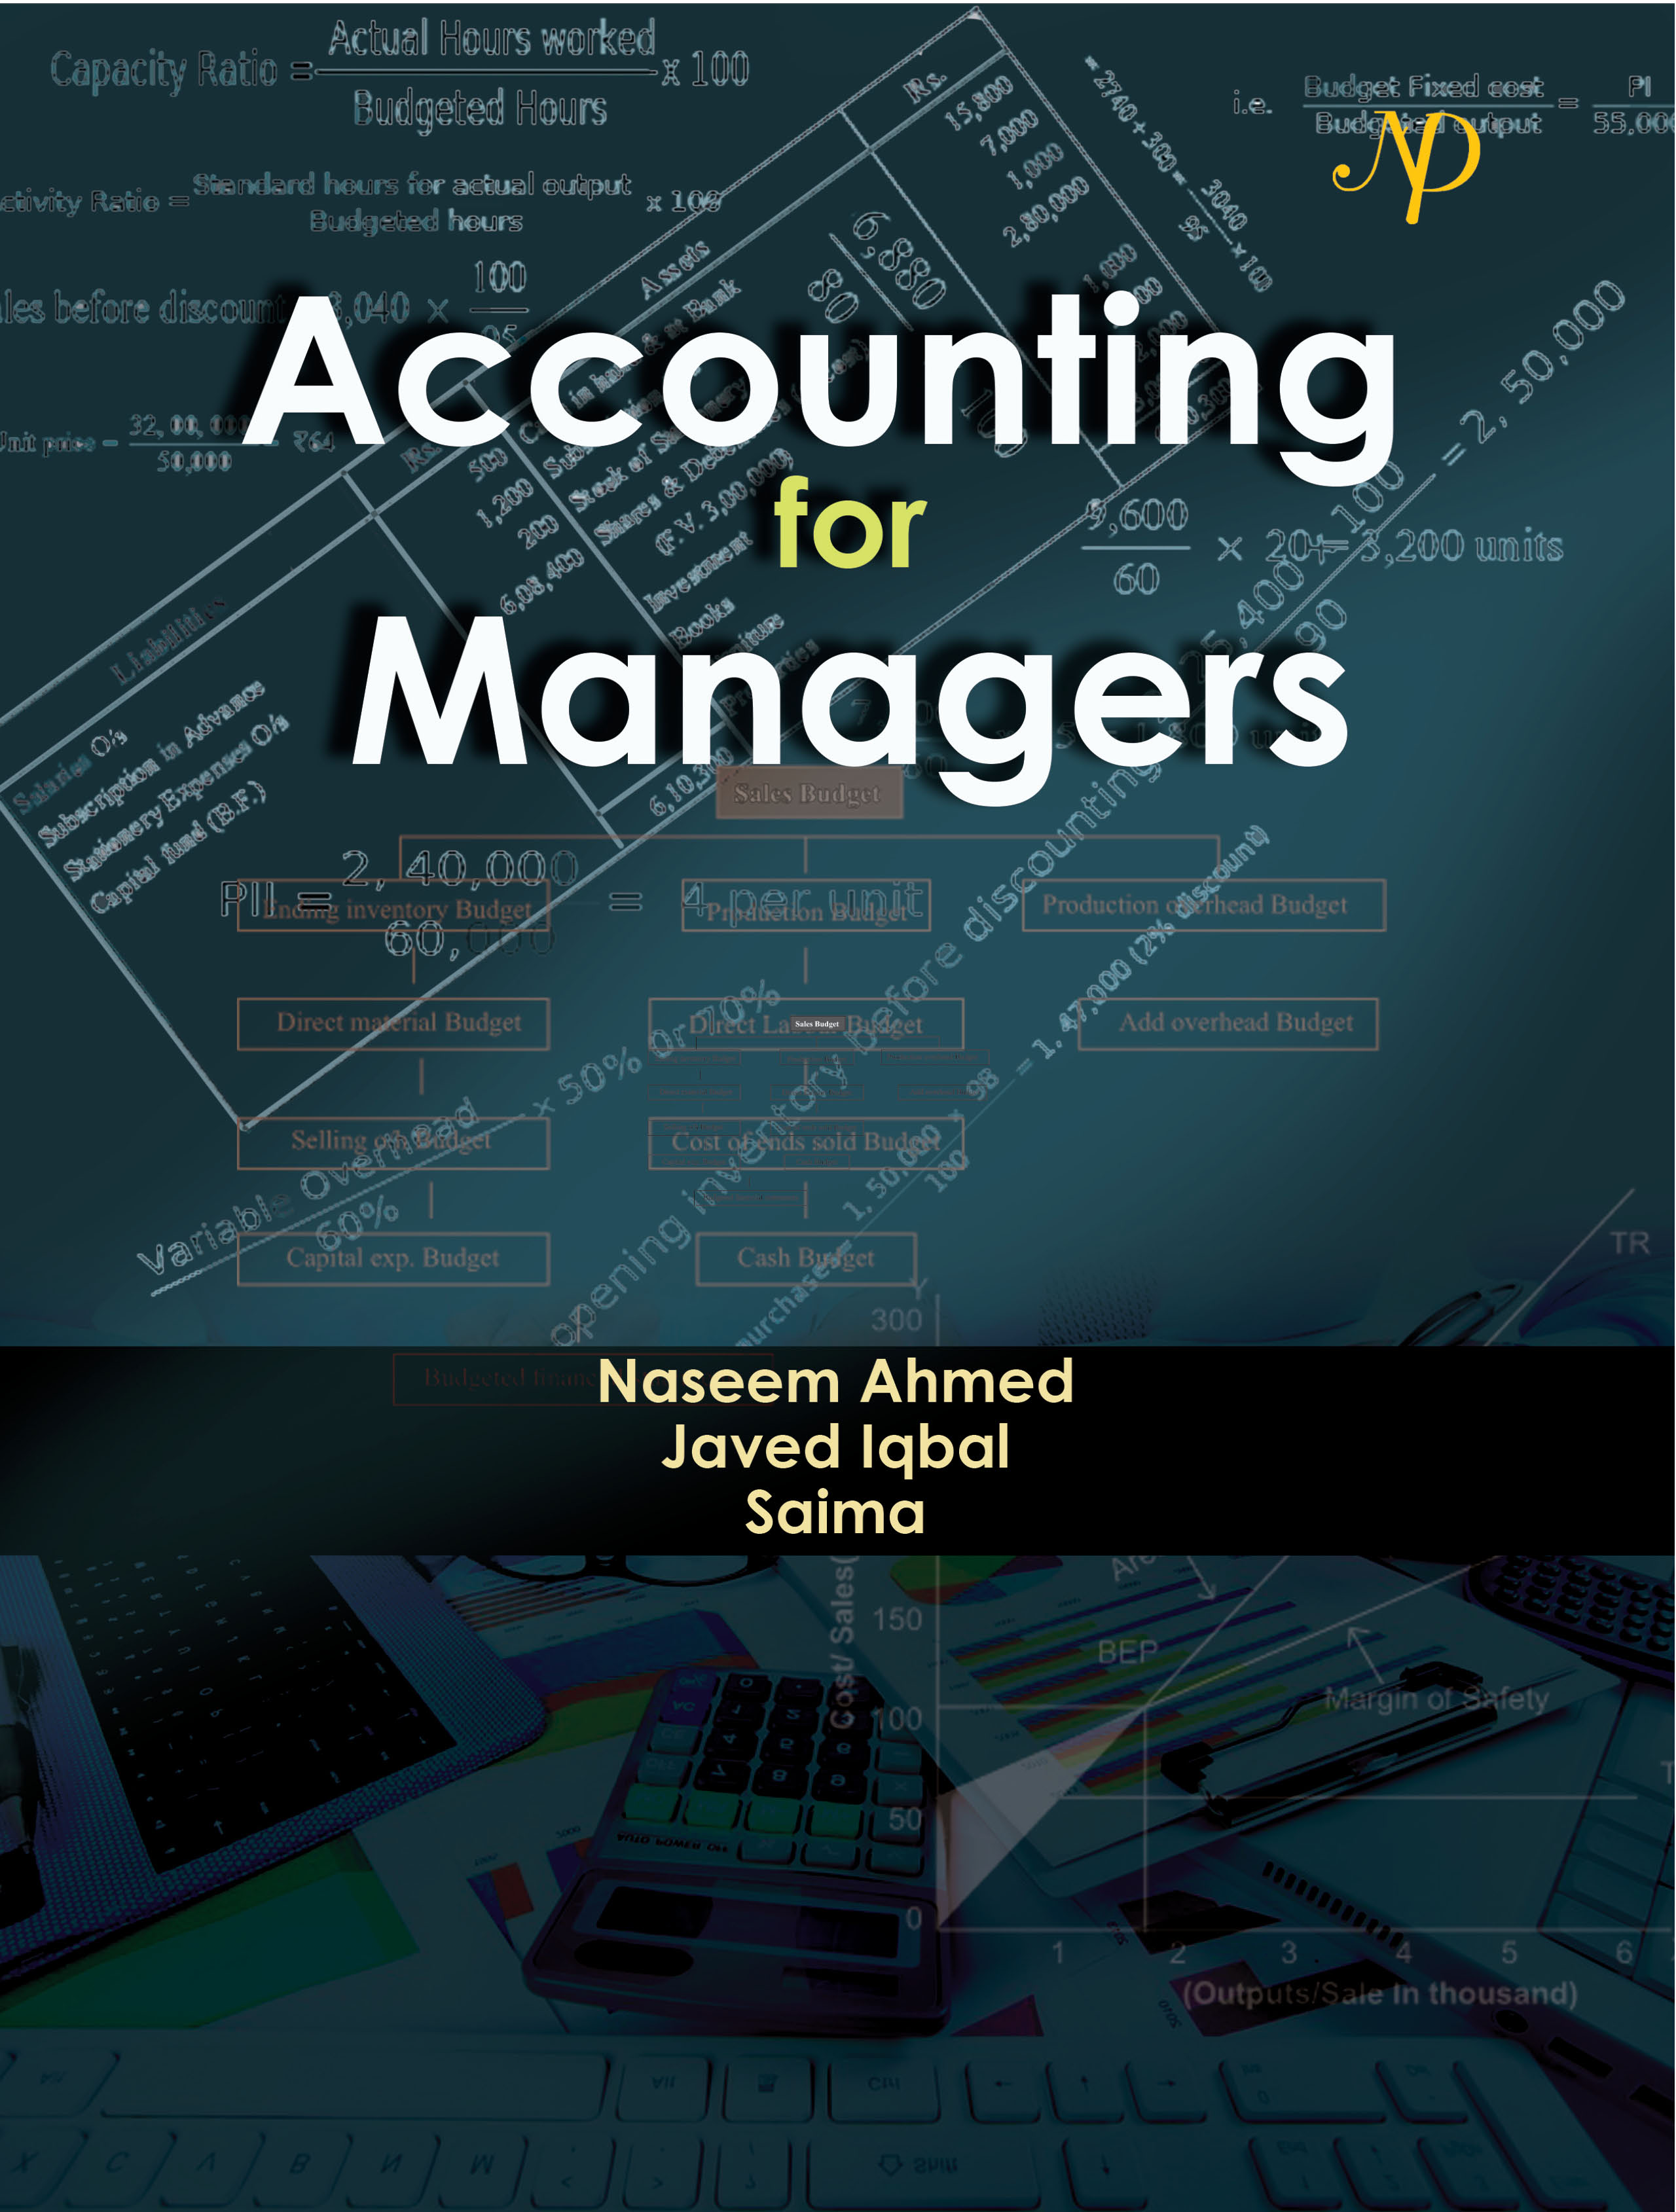 Accounting For Managers Cover final.jpg